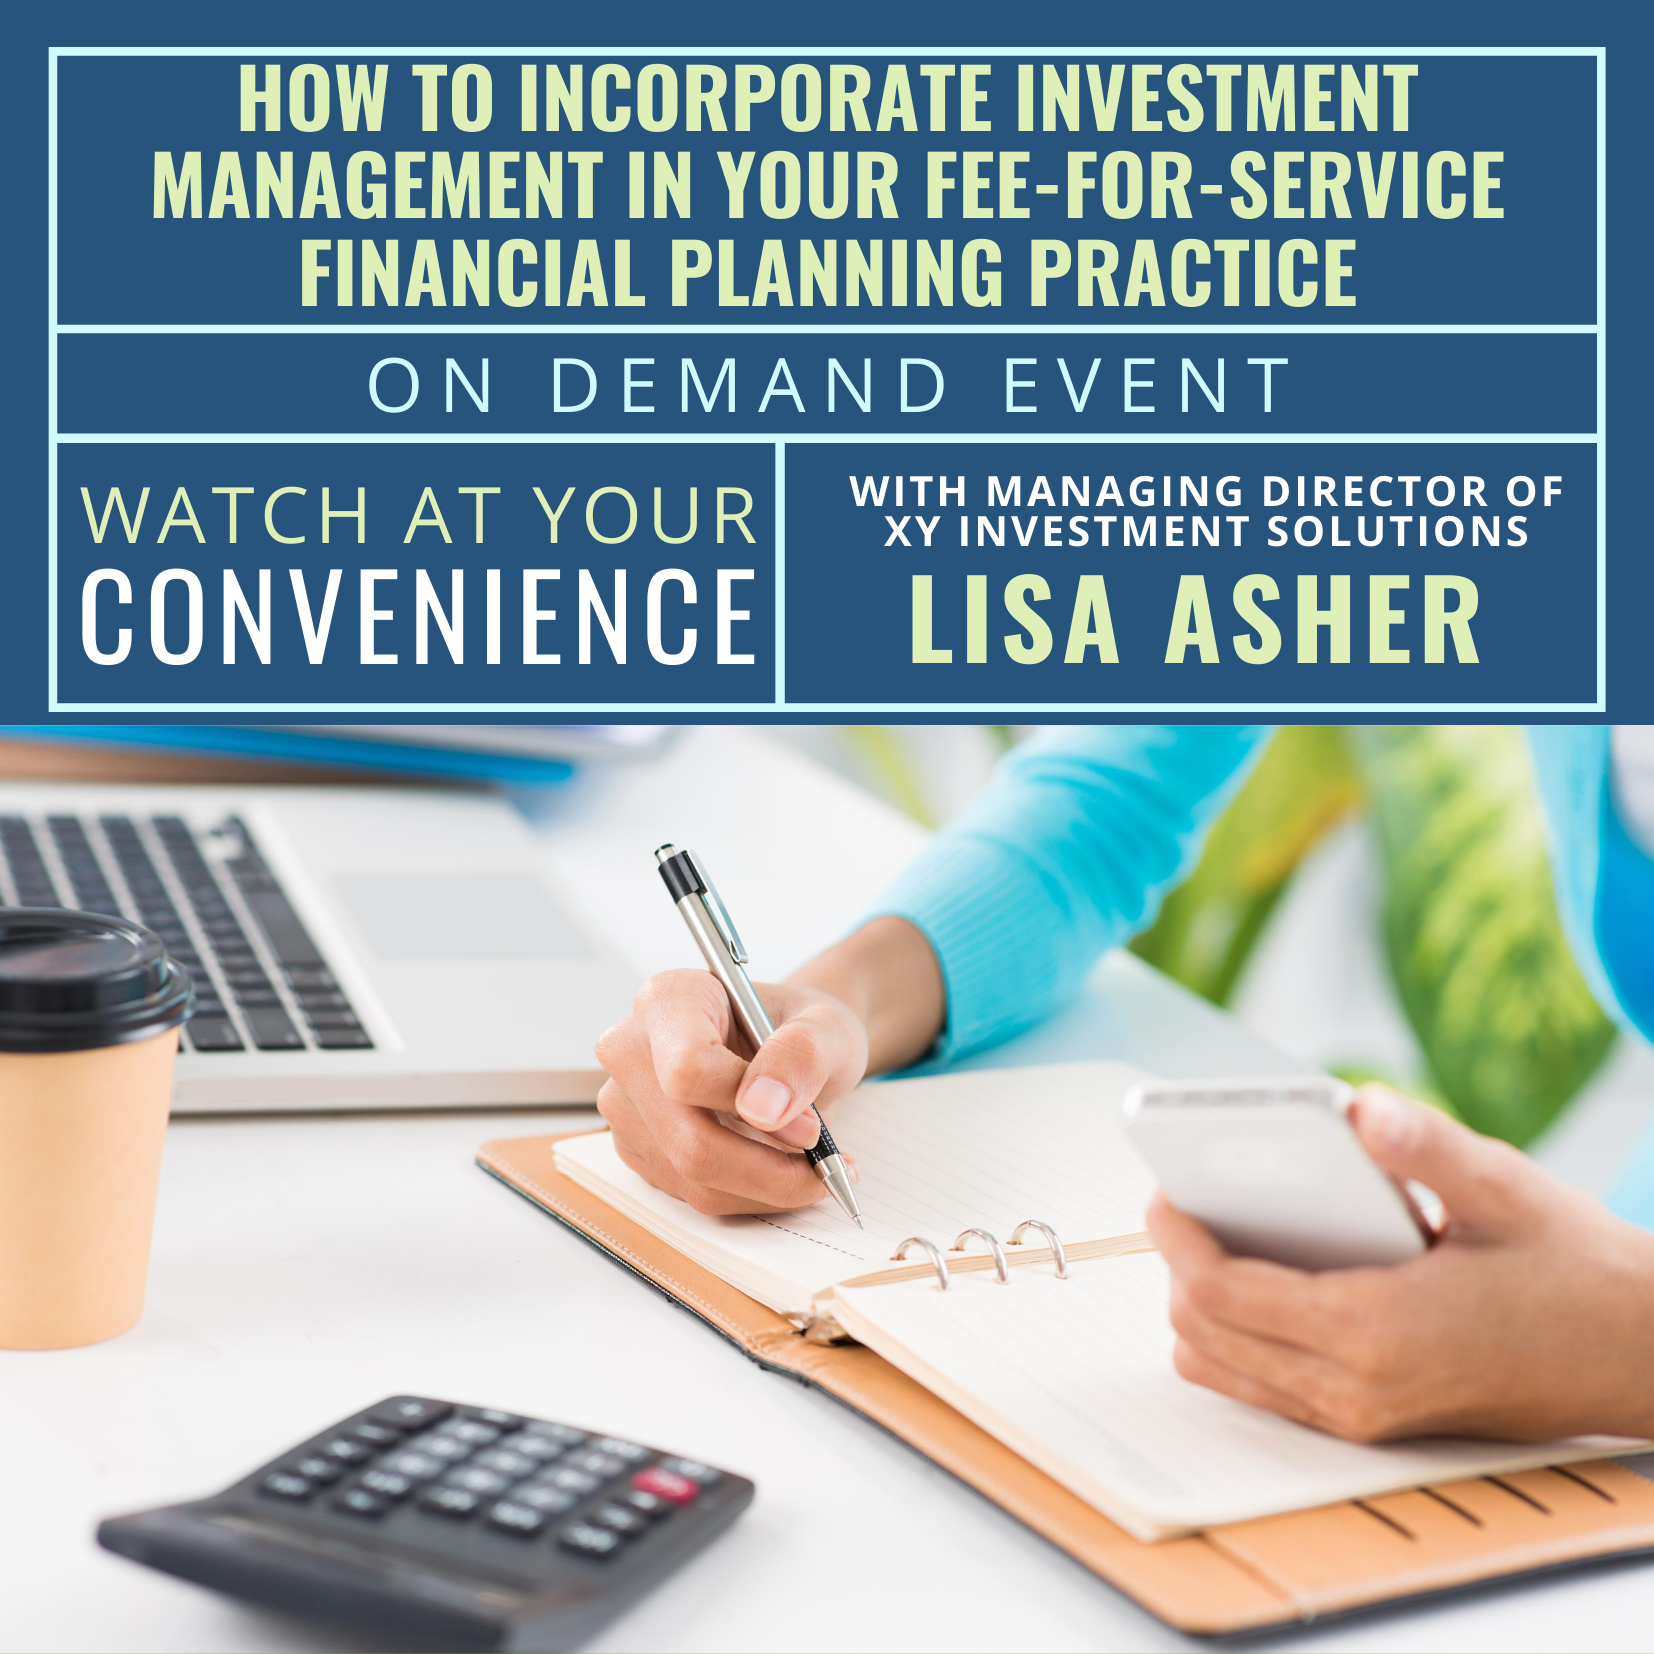 How to Incorporate Investment Management in Your Fee-for-Service Financial Planning Practice